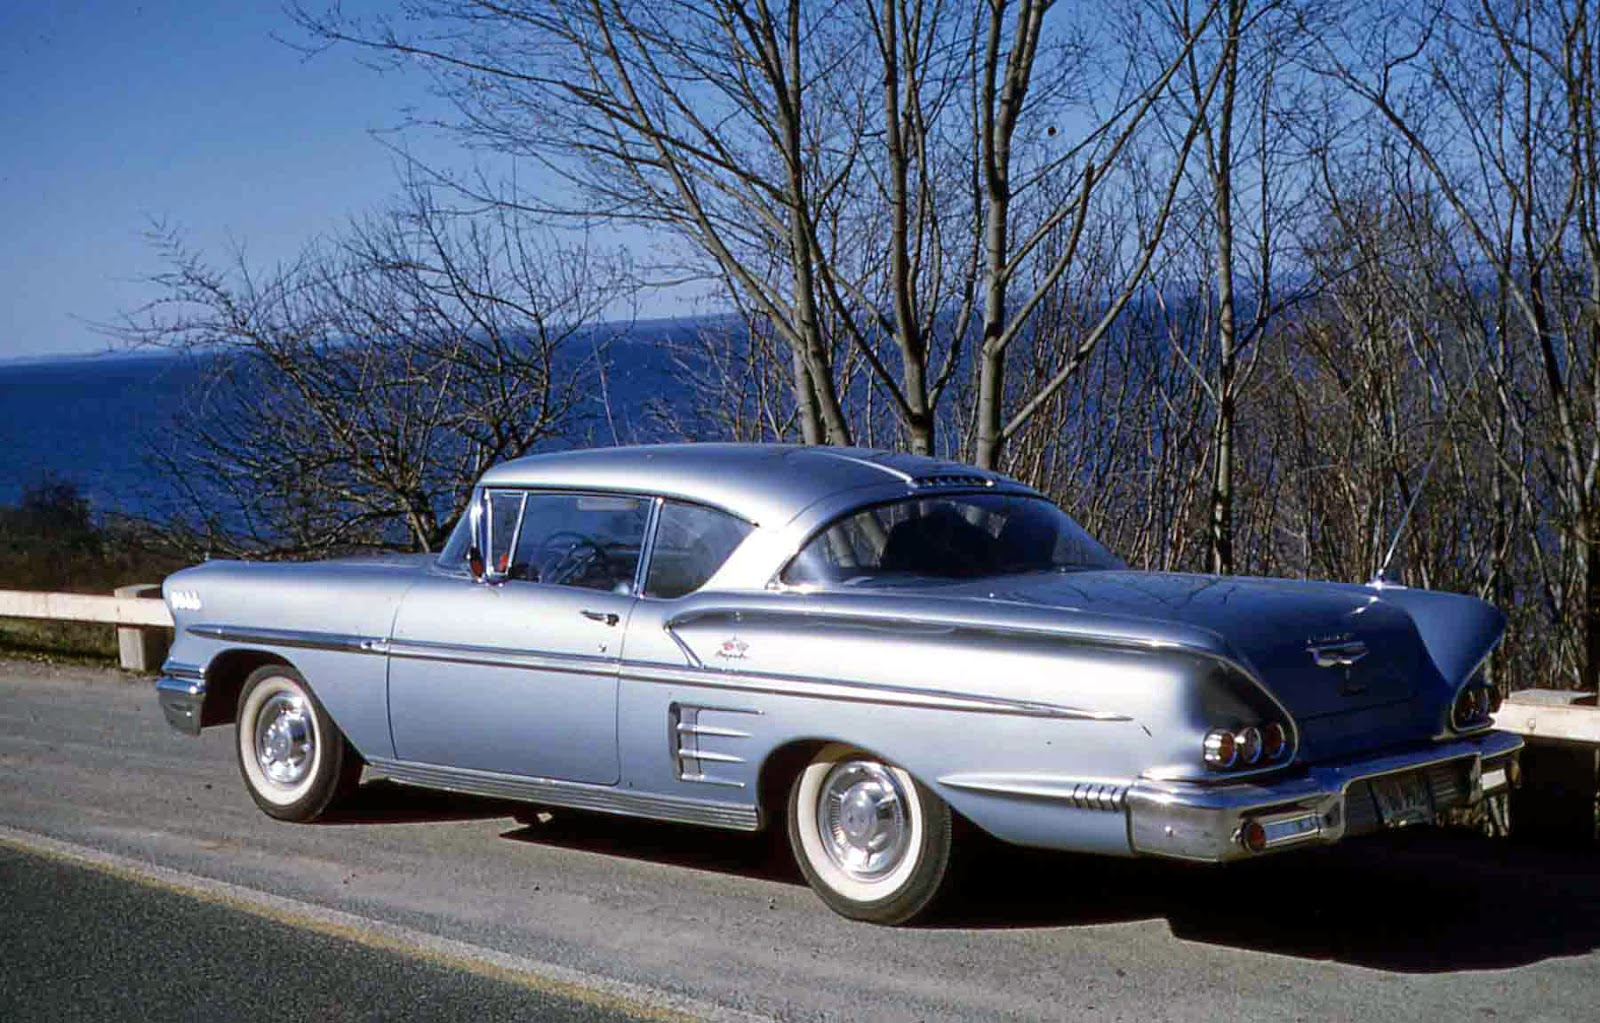 moreover Chevrolet Impala in addition  as well Chevrolet Impala likewise Px Pontiac Parisienne. on 1958 chevrolet impala sport coupe